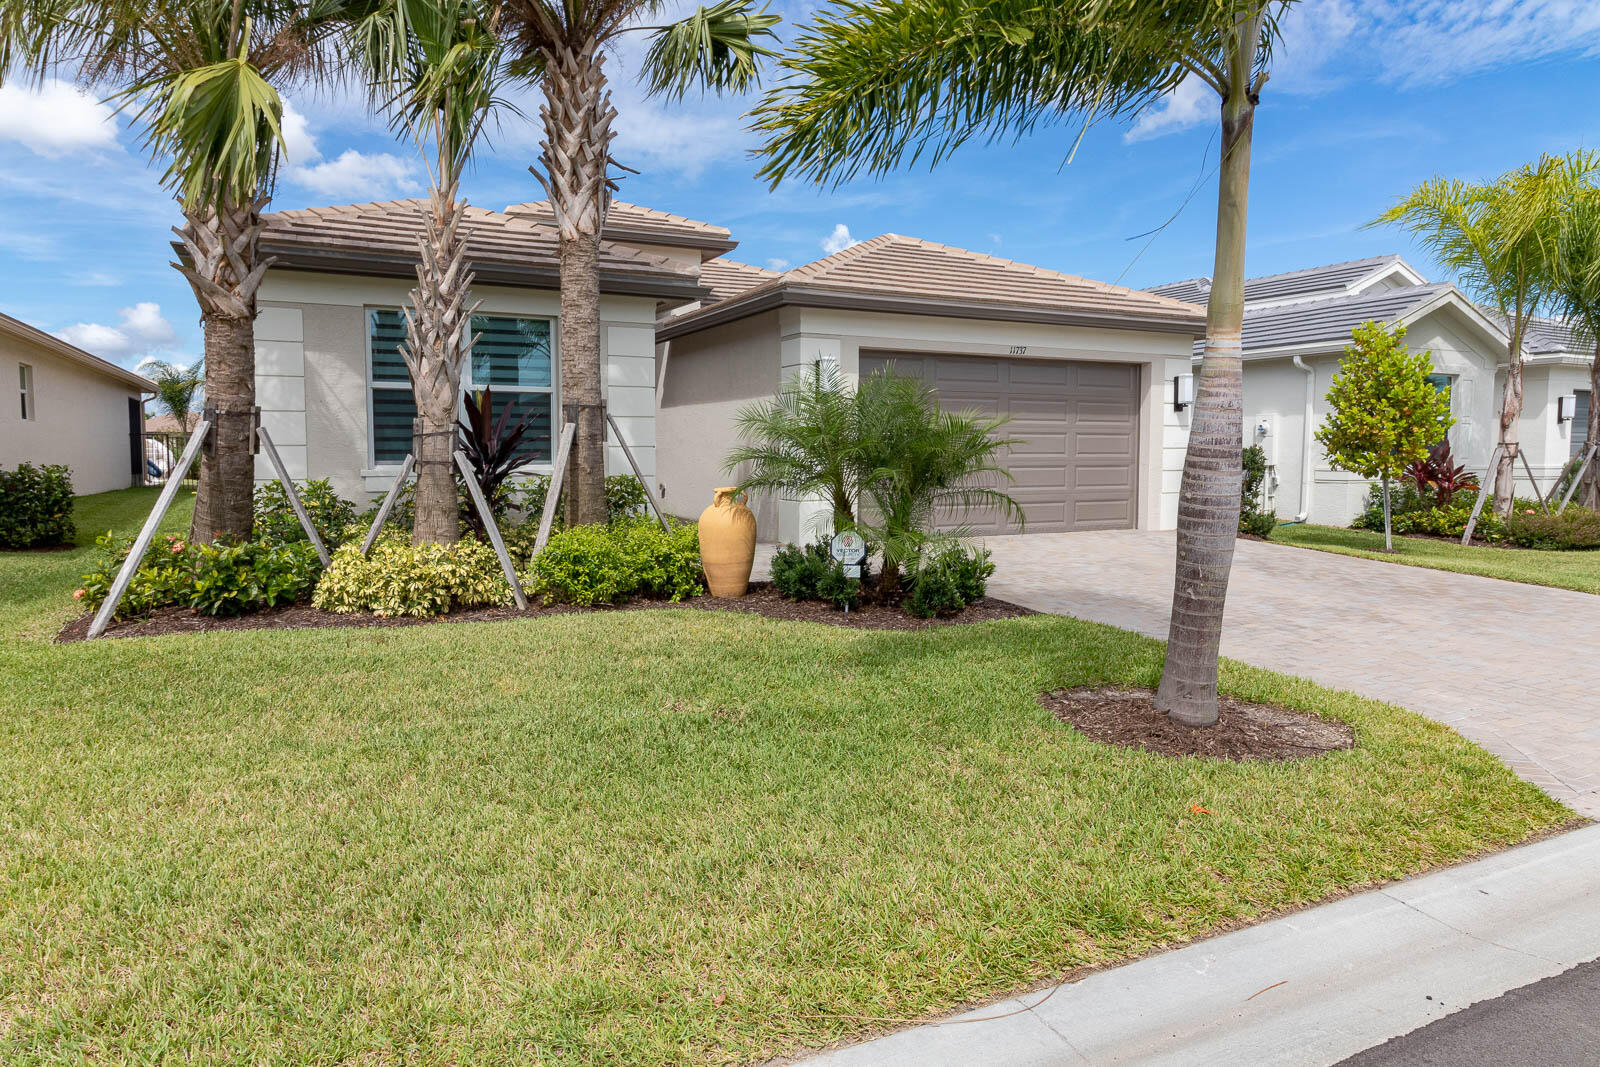 For Sale 10749356, FL